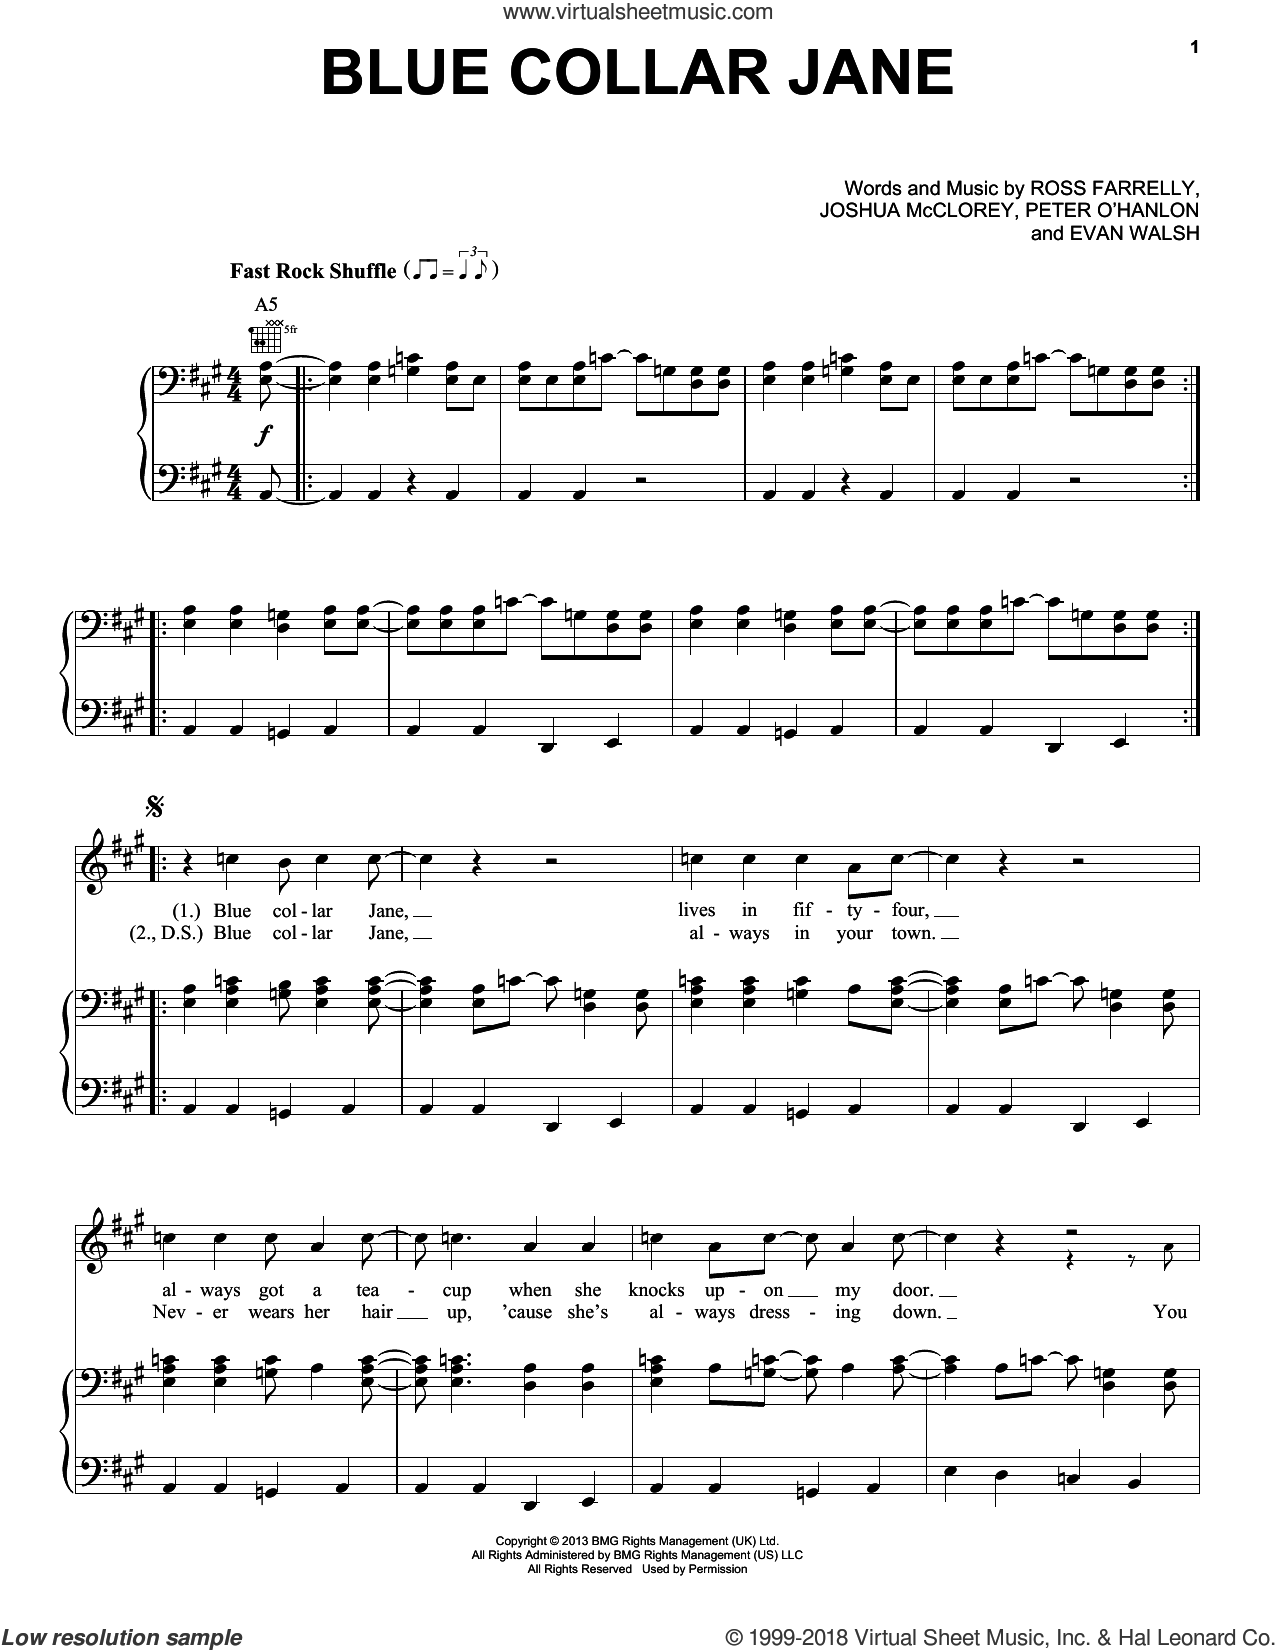 Blue Collar Jane sheet music for voice, piano or guitar by Ross Farrelly. Score Image Preview.